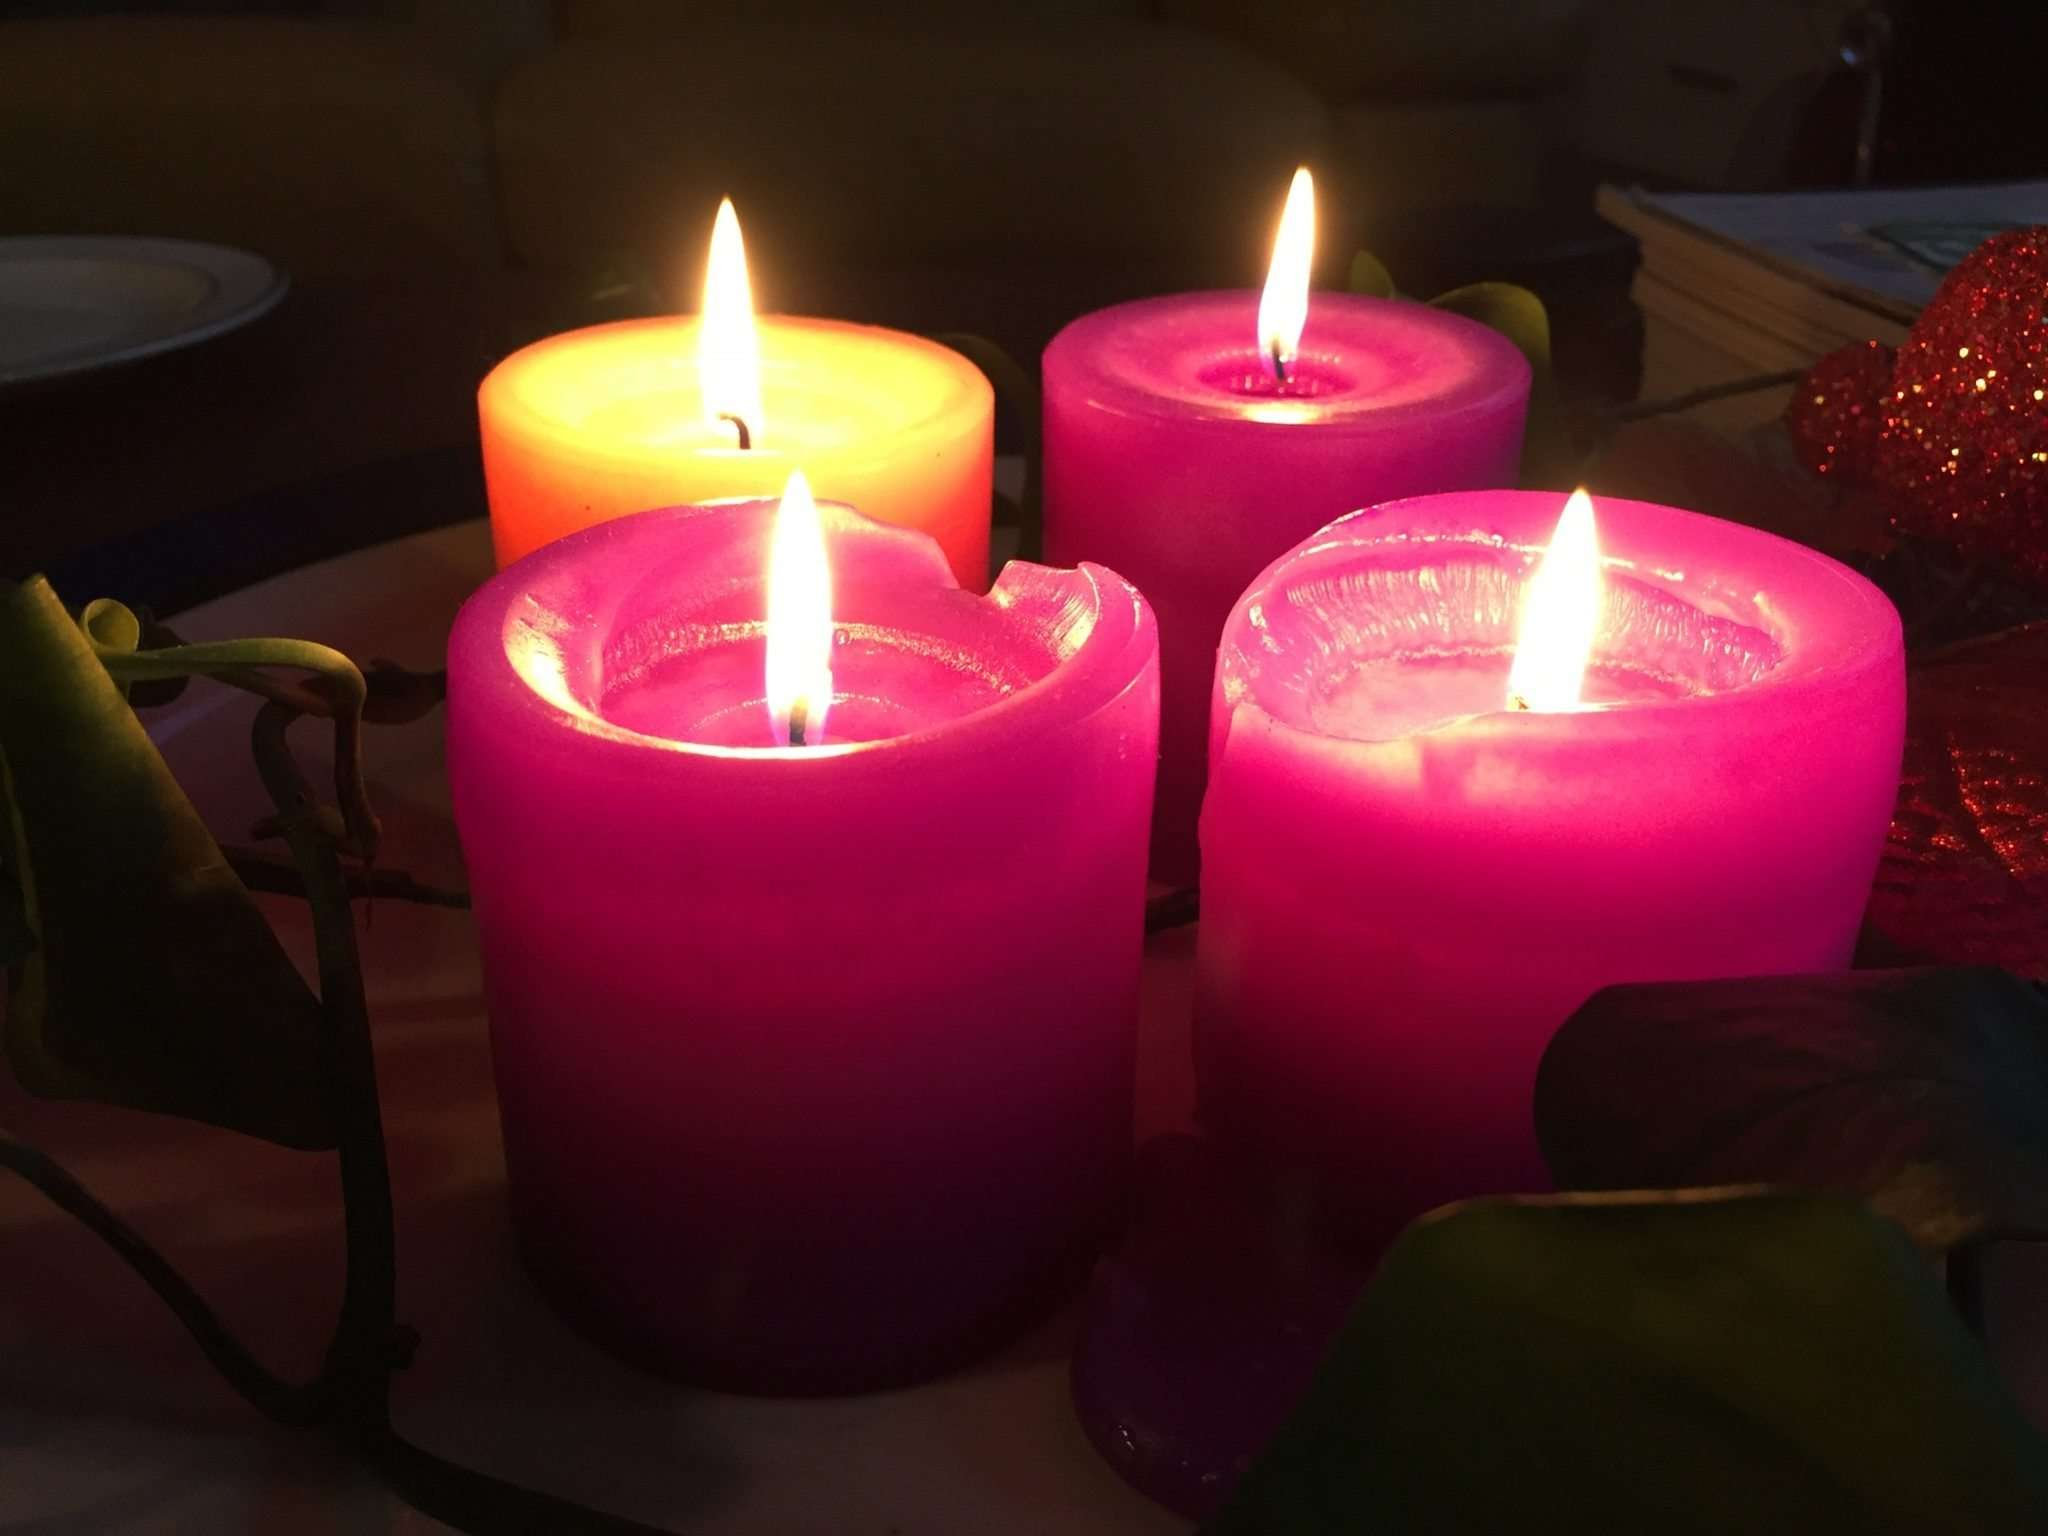 Advent wreath week four - three purple candles and rose coloured candle are lit.